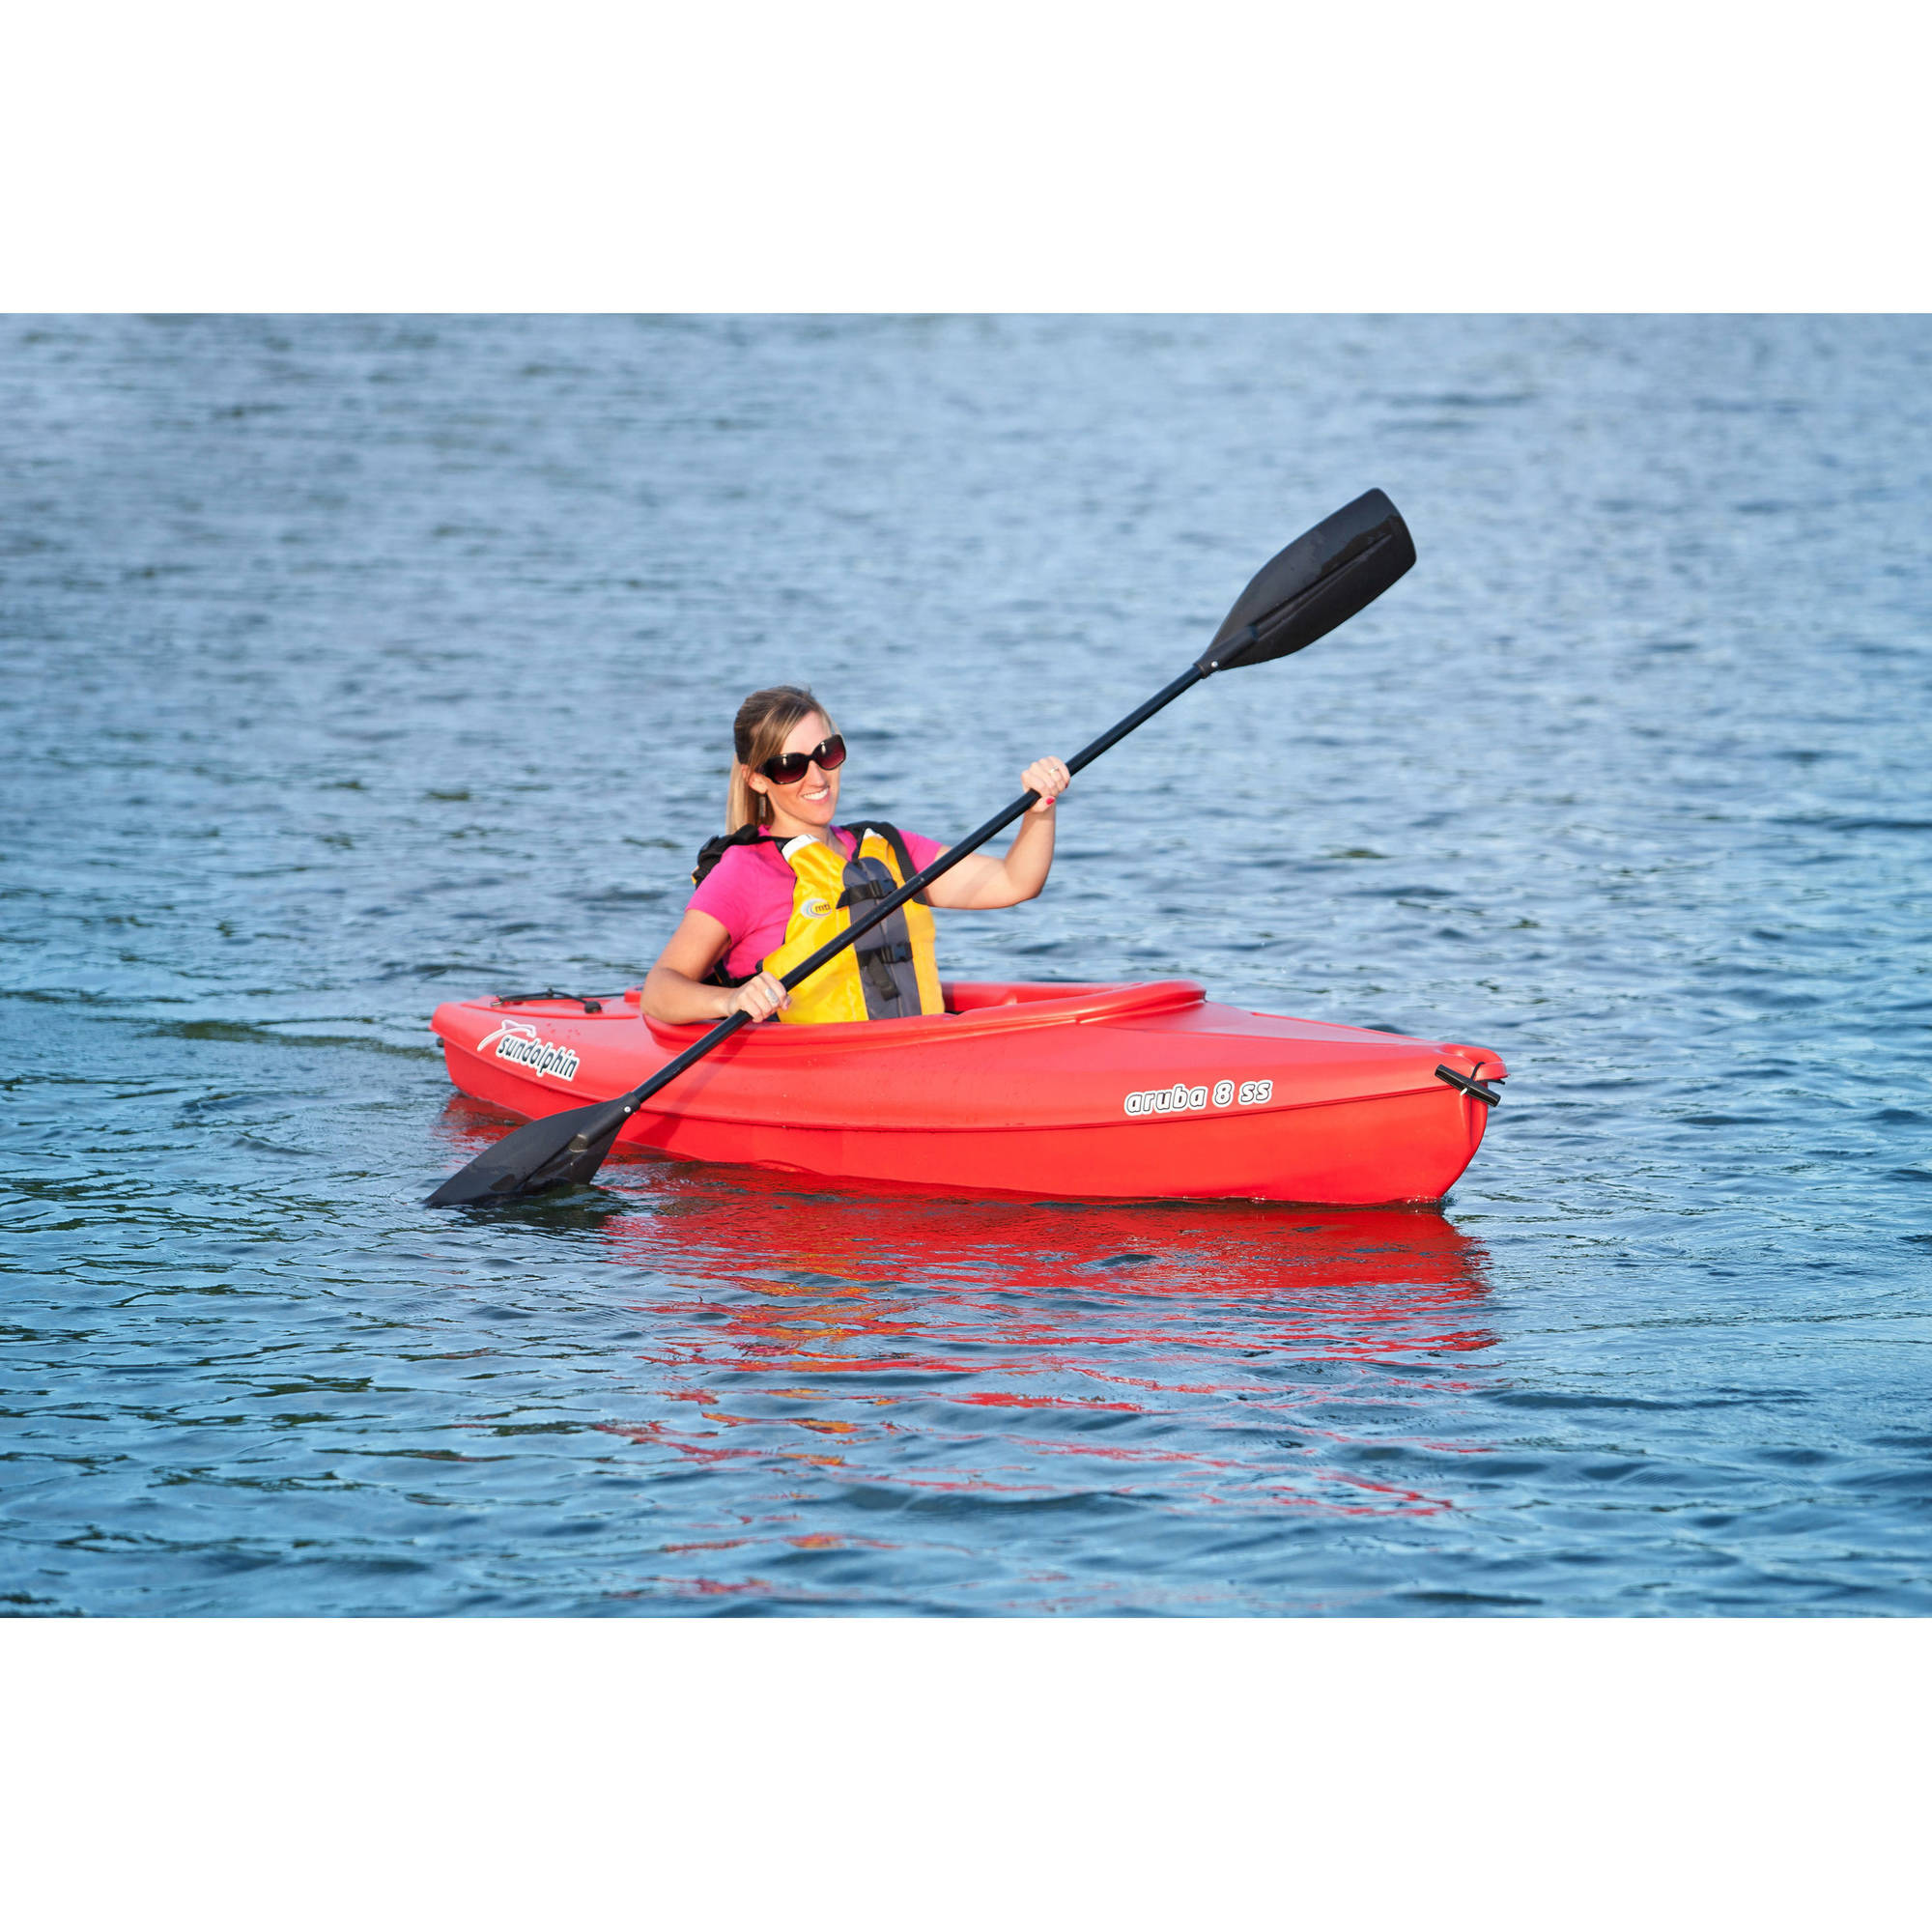 Sun dolphin aruba 8 foot ss sit in kayak 019862516758 ebay for Fishing kayak walmart